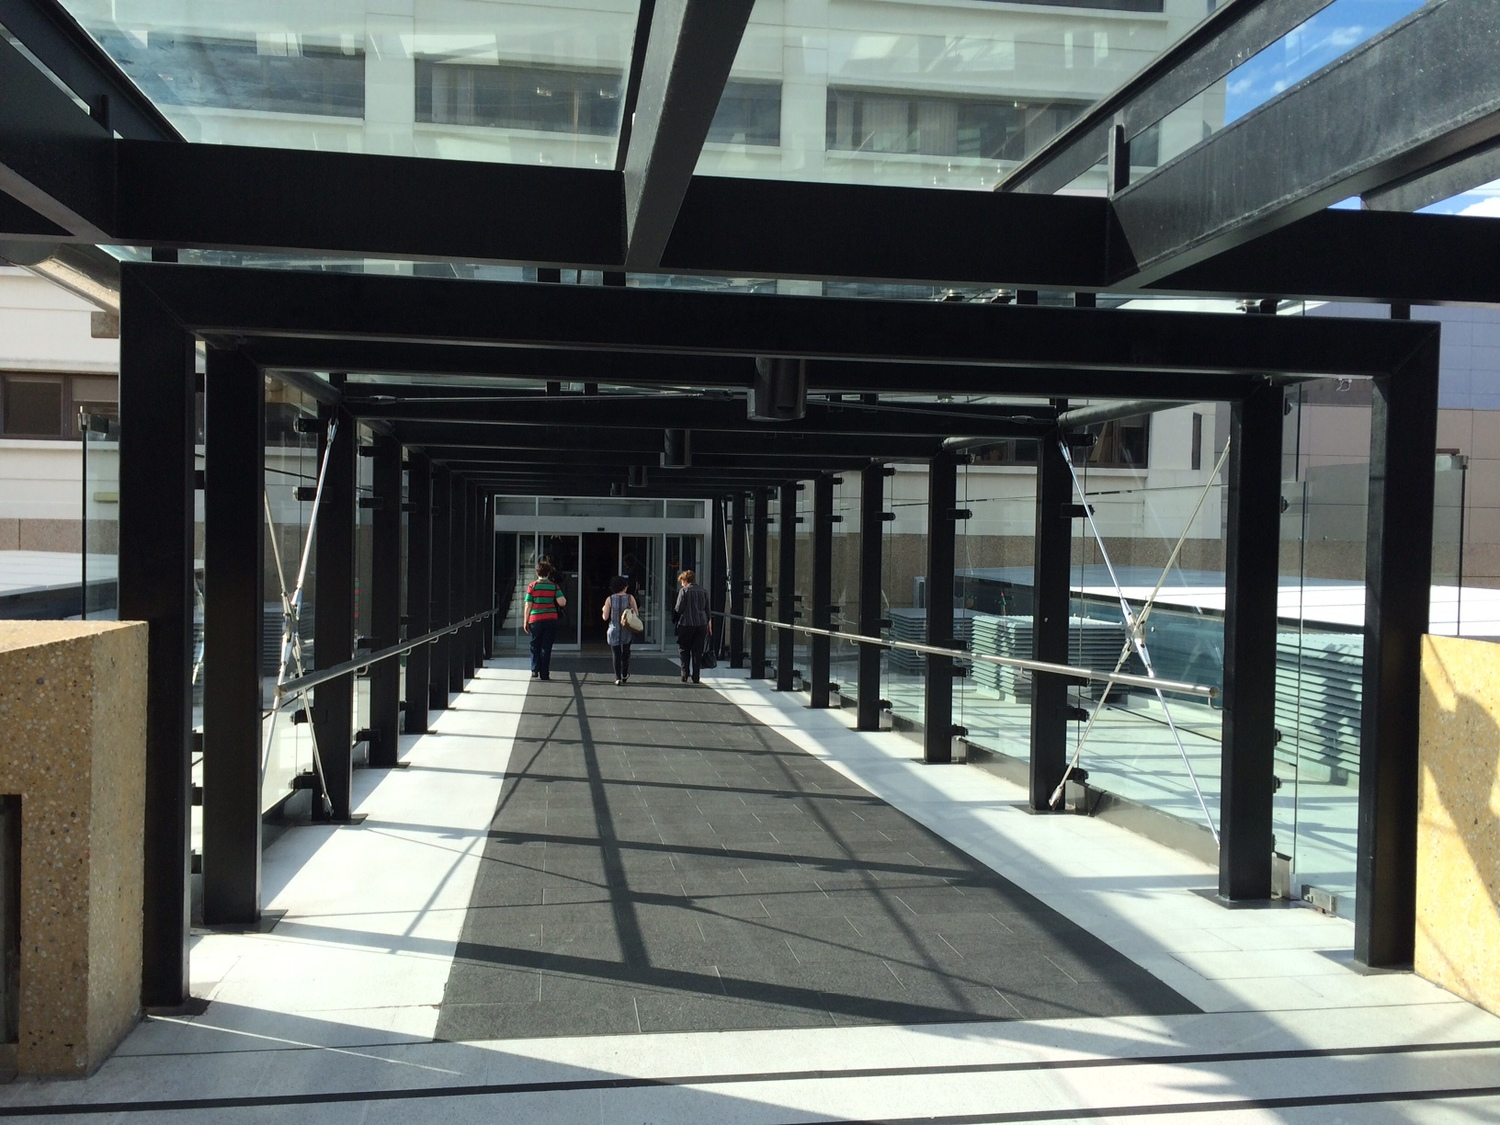 Use Sky Bridge located on Level 1 of Roof Top Car Park.  Proceed down Corridor.